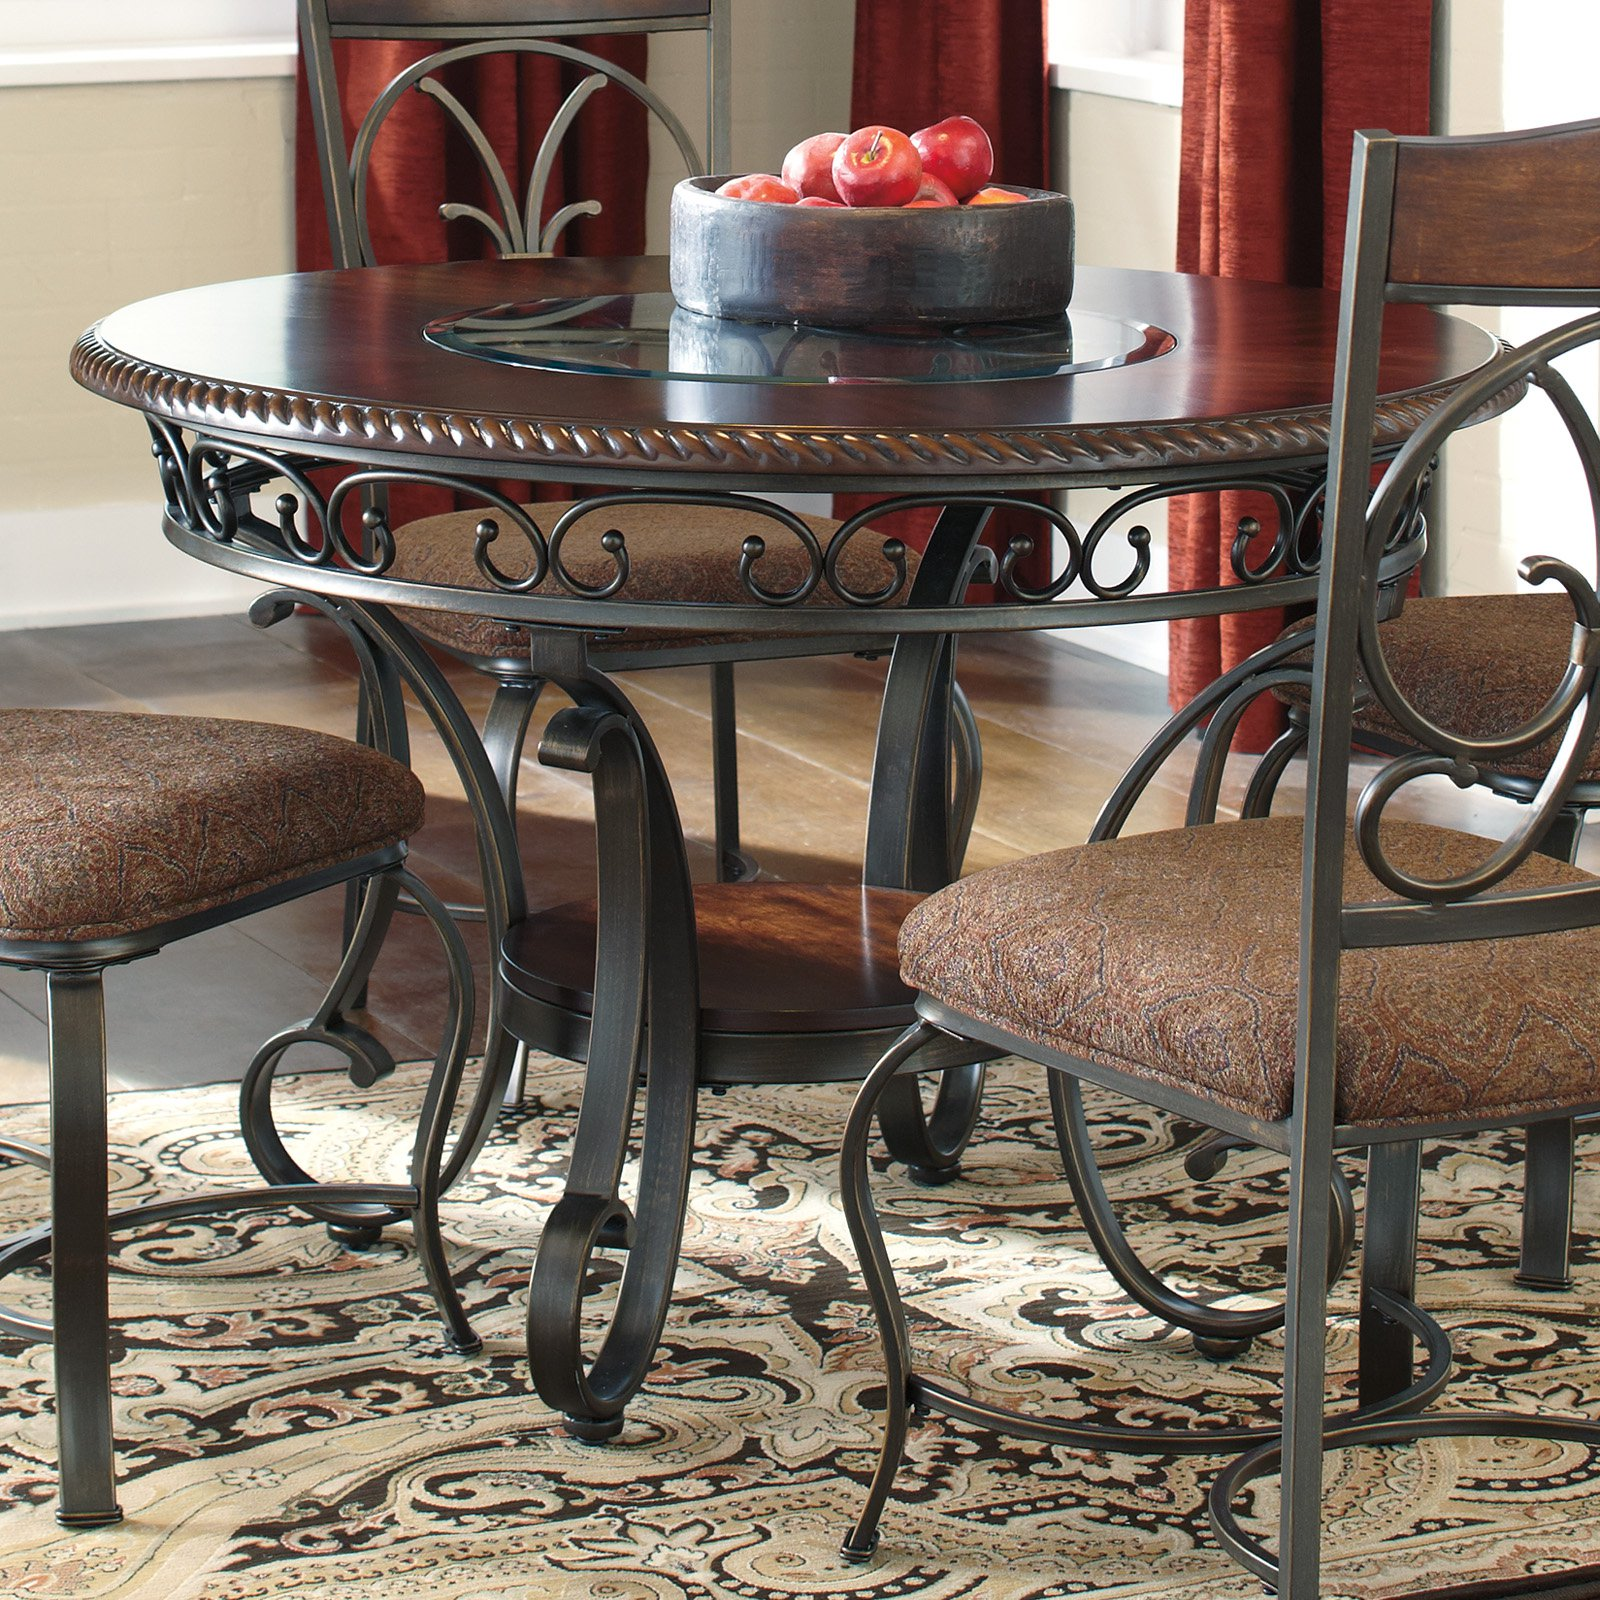 Signature Design by Ashley Glambrey Round Dining Table by Ashley Furniture